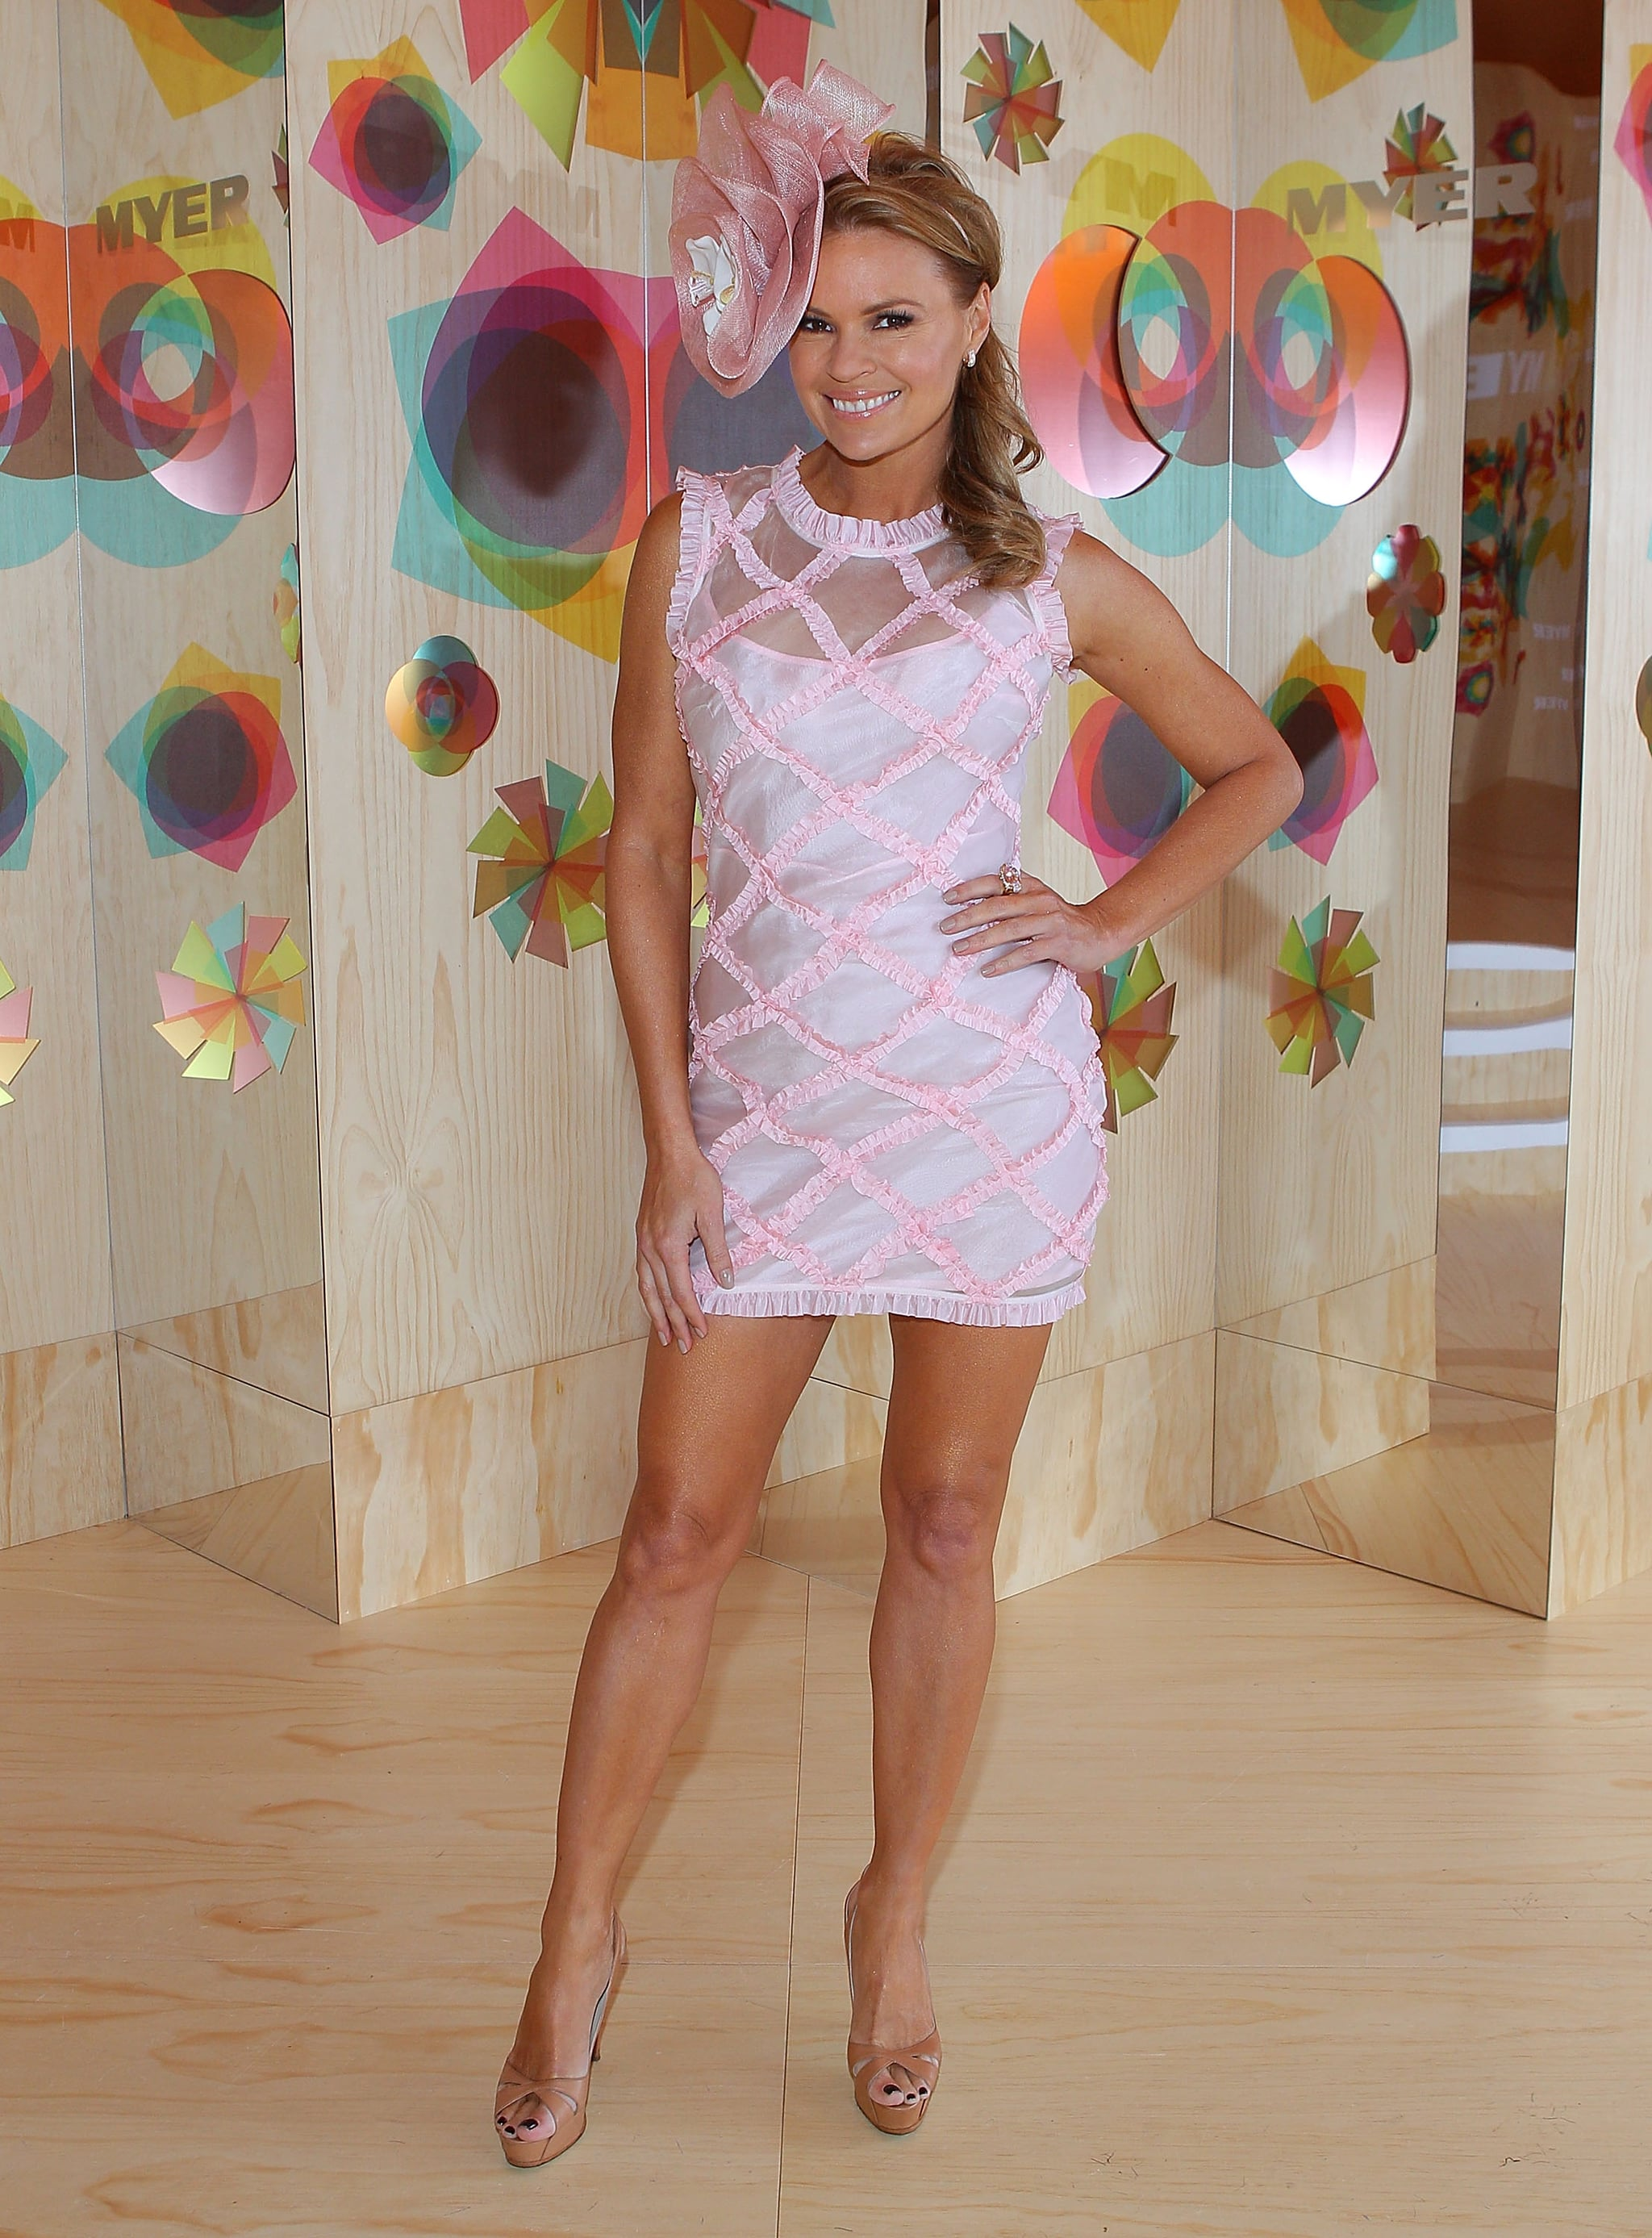 Sonia Kruger's tan heels make those pins go on forever.